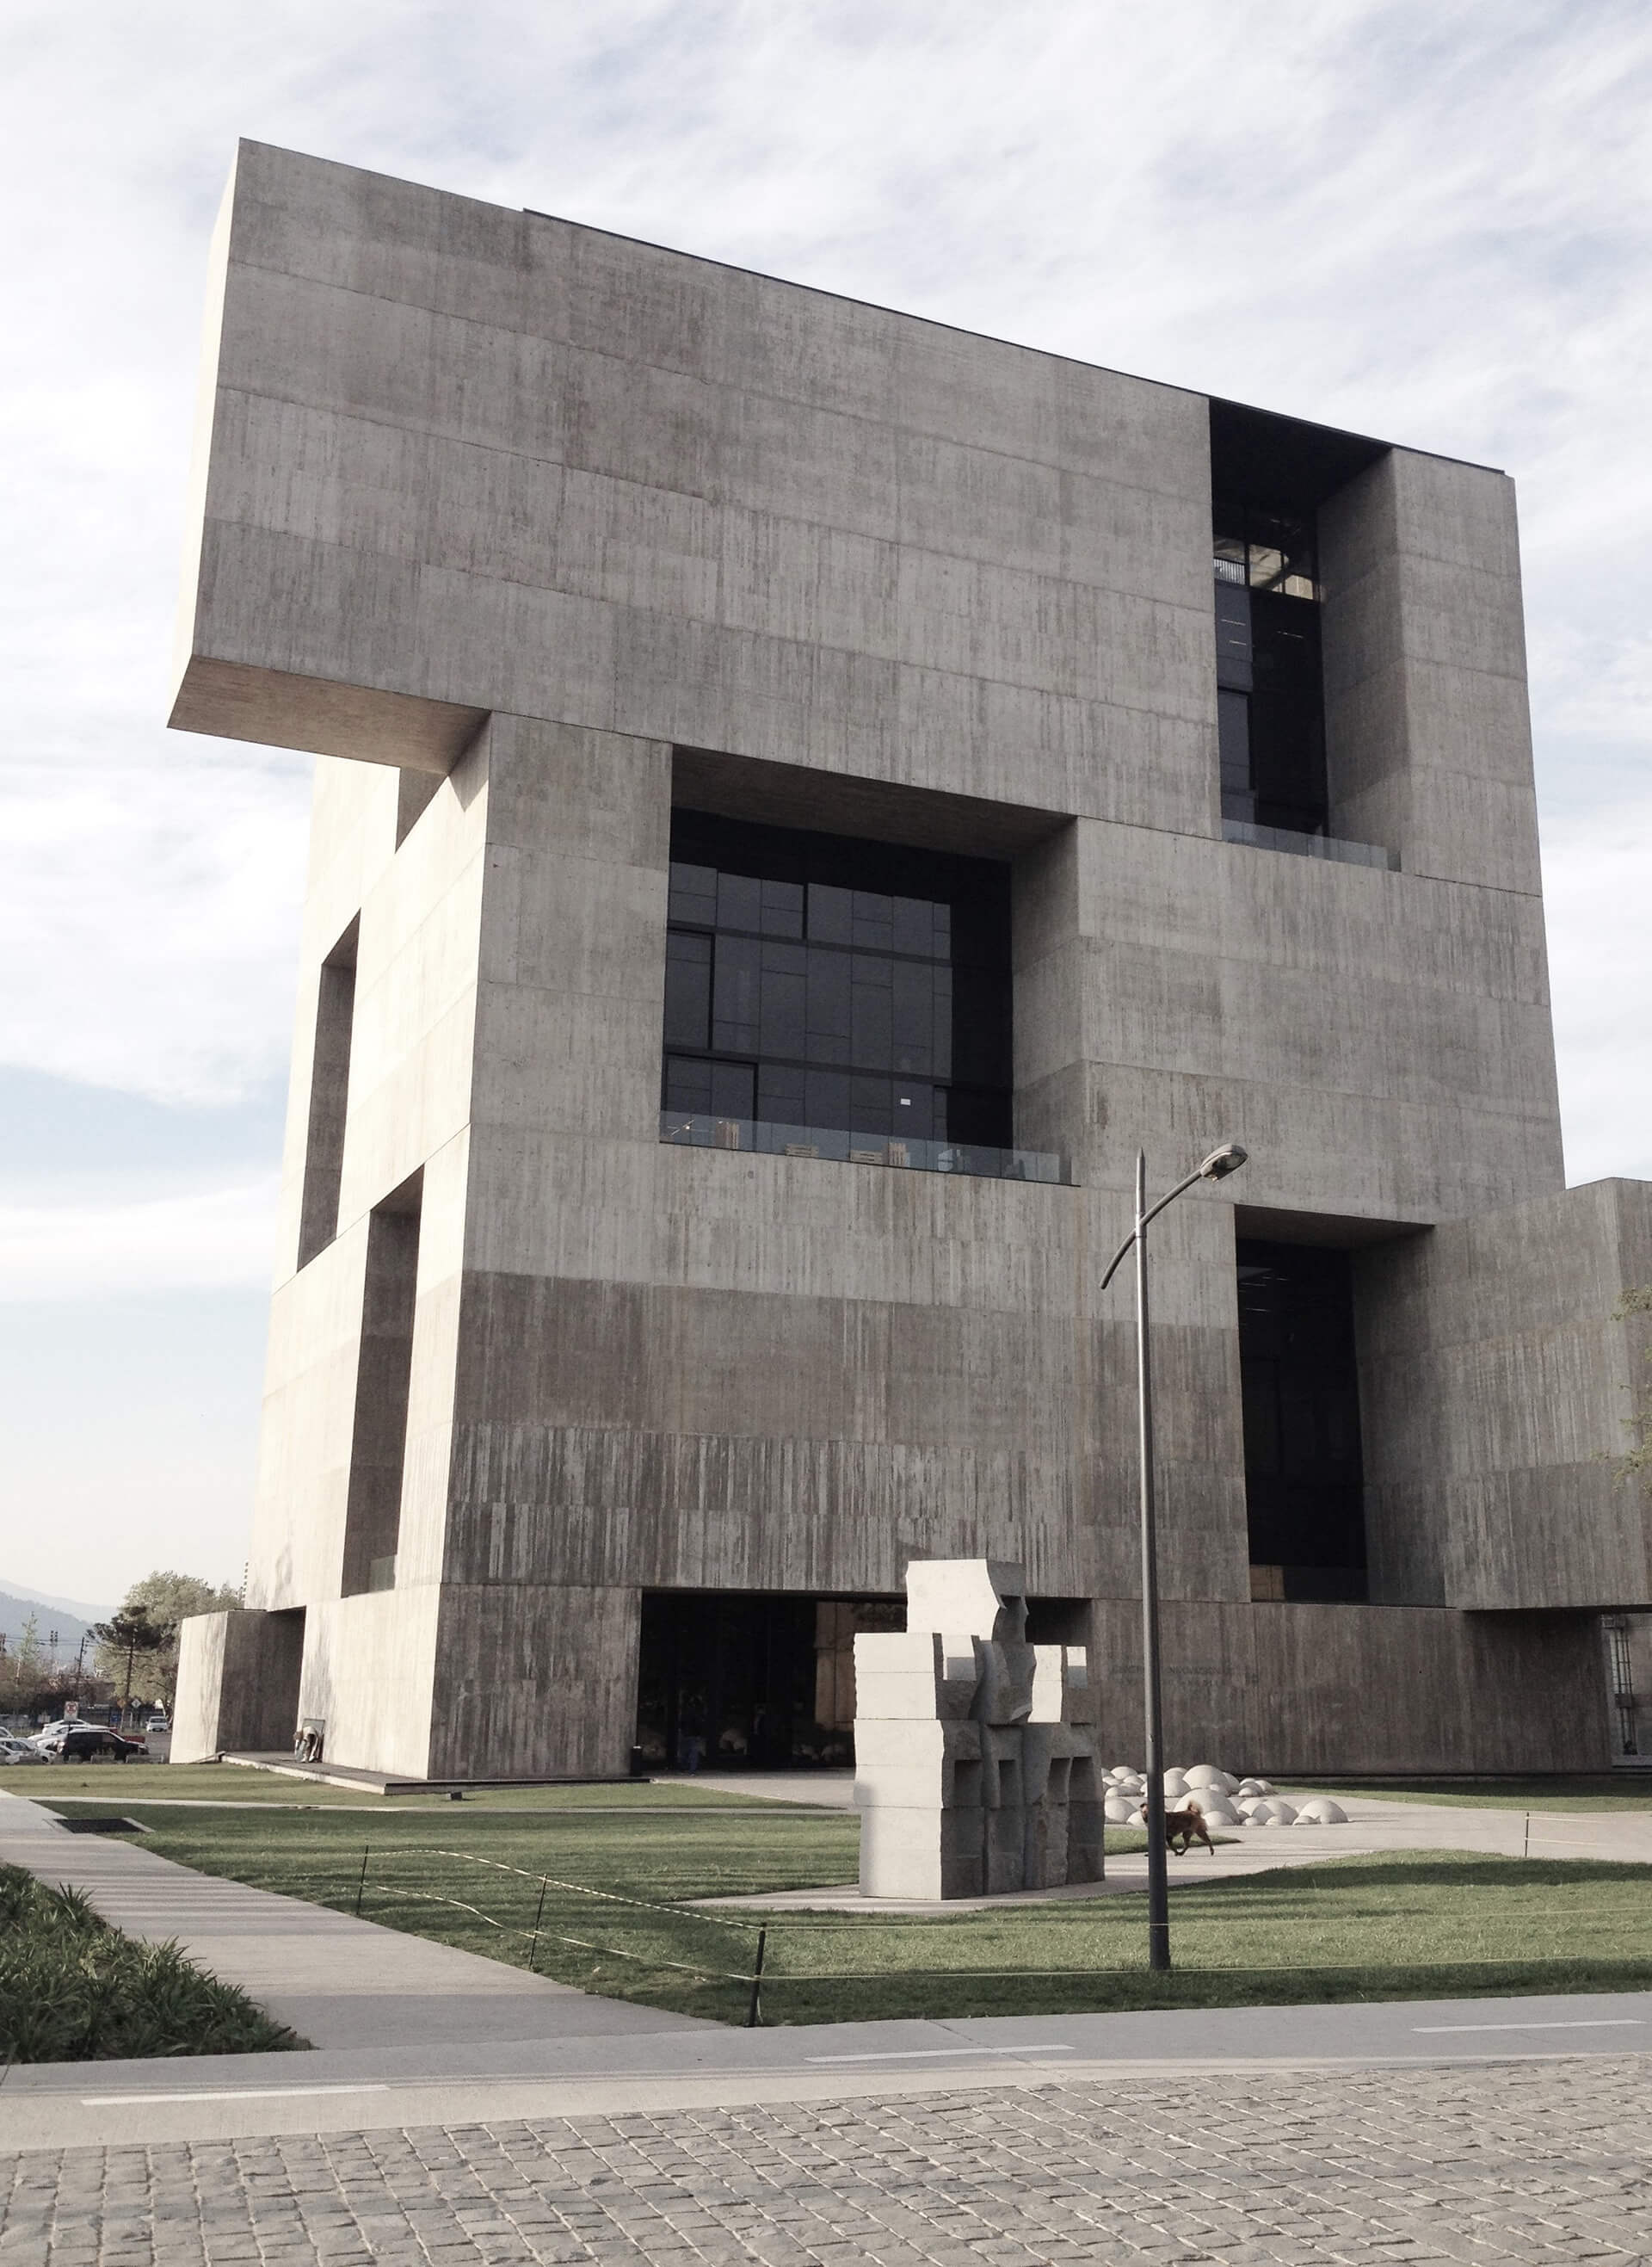 UC Anacleto Angelini Innovation Center, designed by Aravena | Alejandro Aravena | Pritzker Architecture Prize | STIRworld